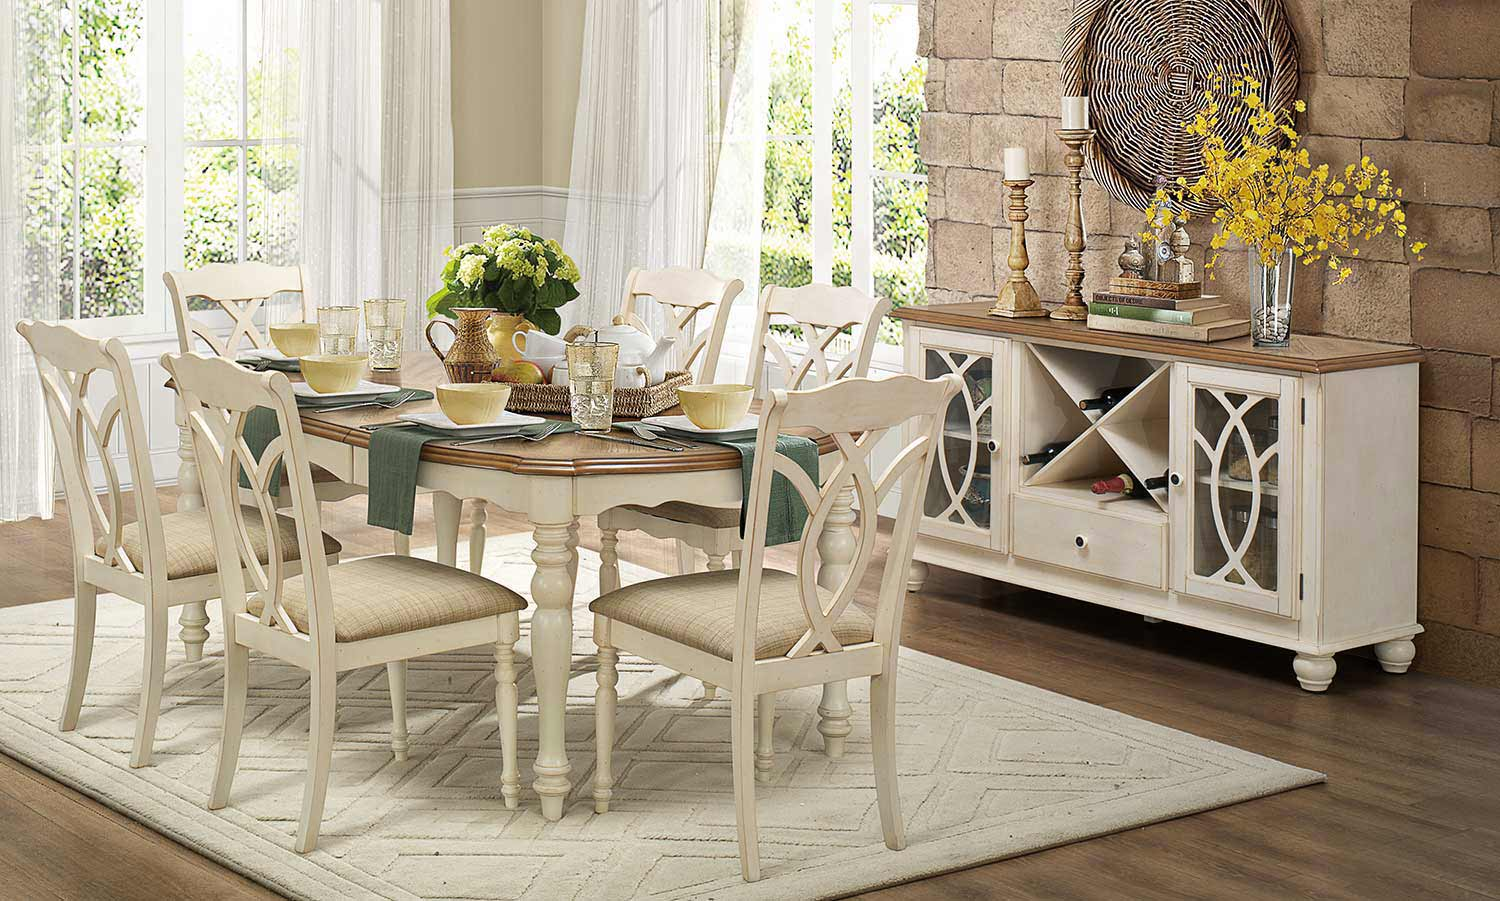 Homelegance Azalea Dining Set - Antique White 5145-Dining ...